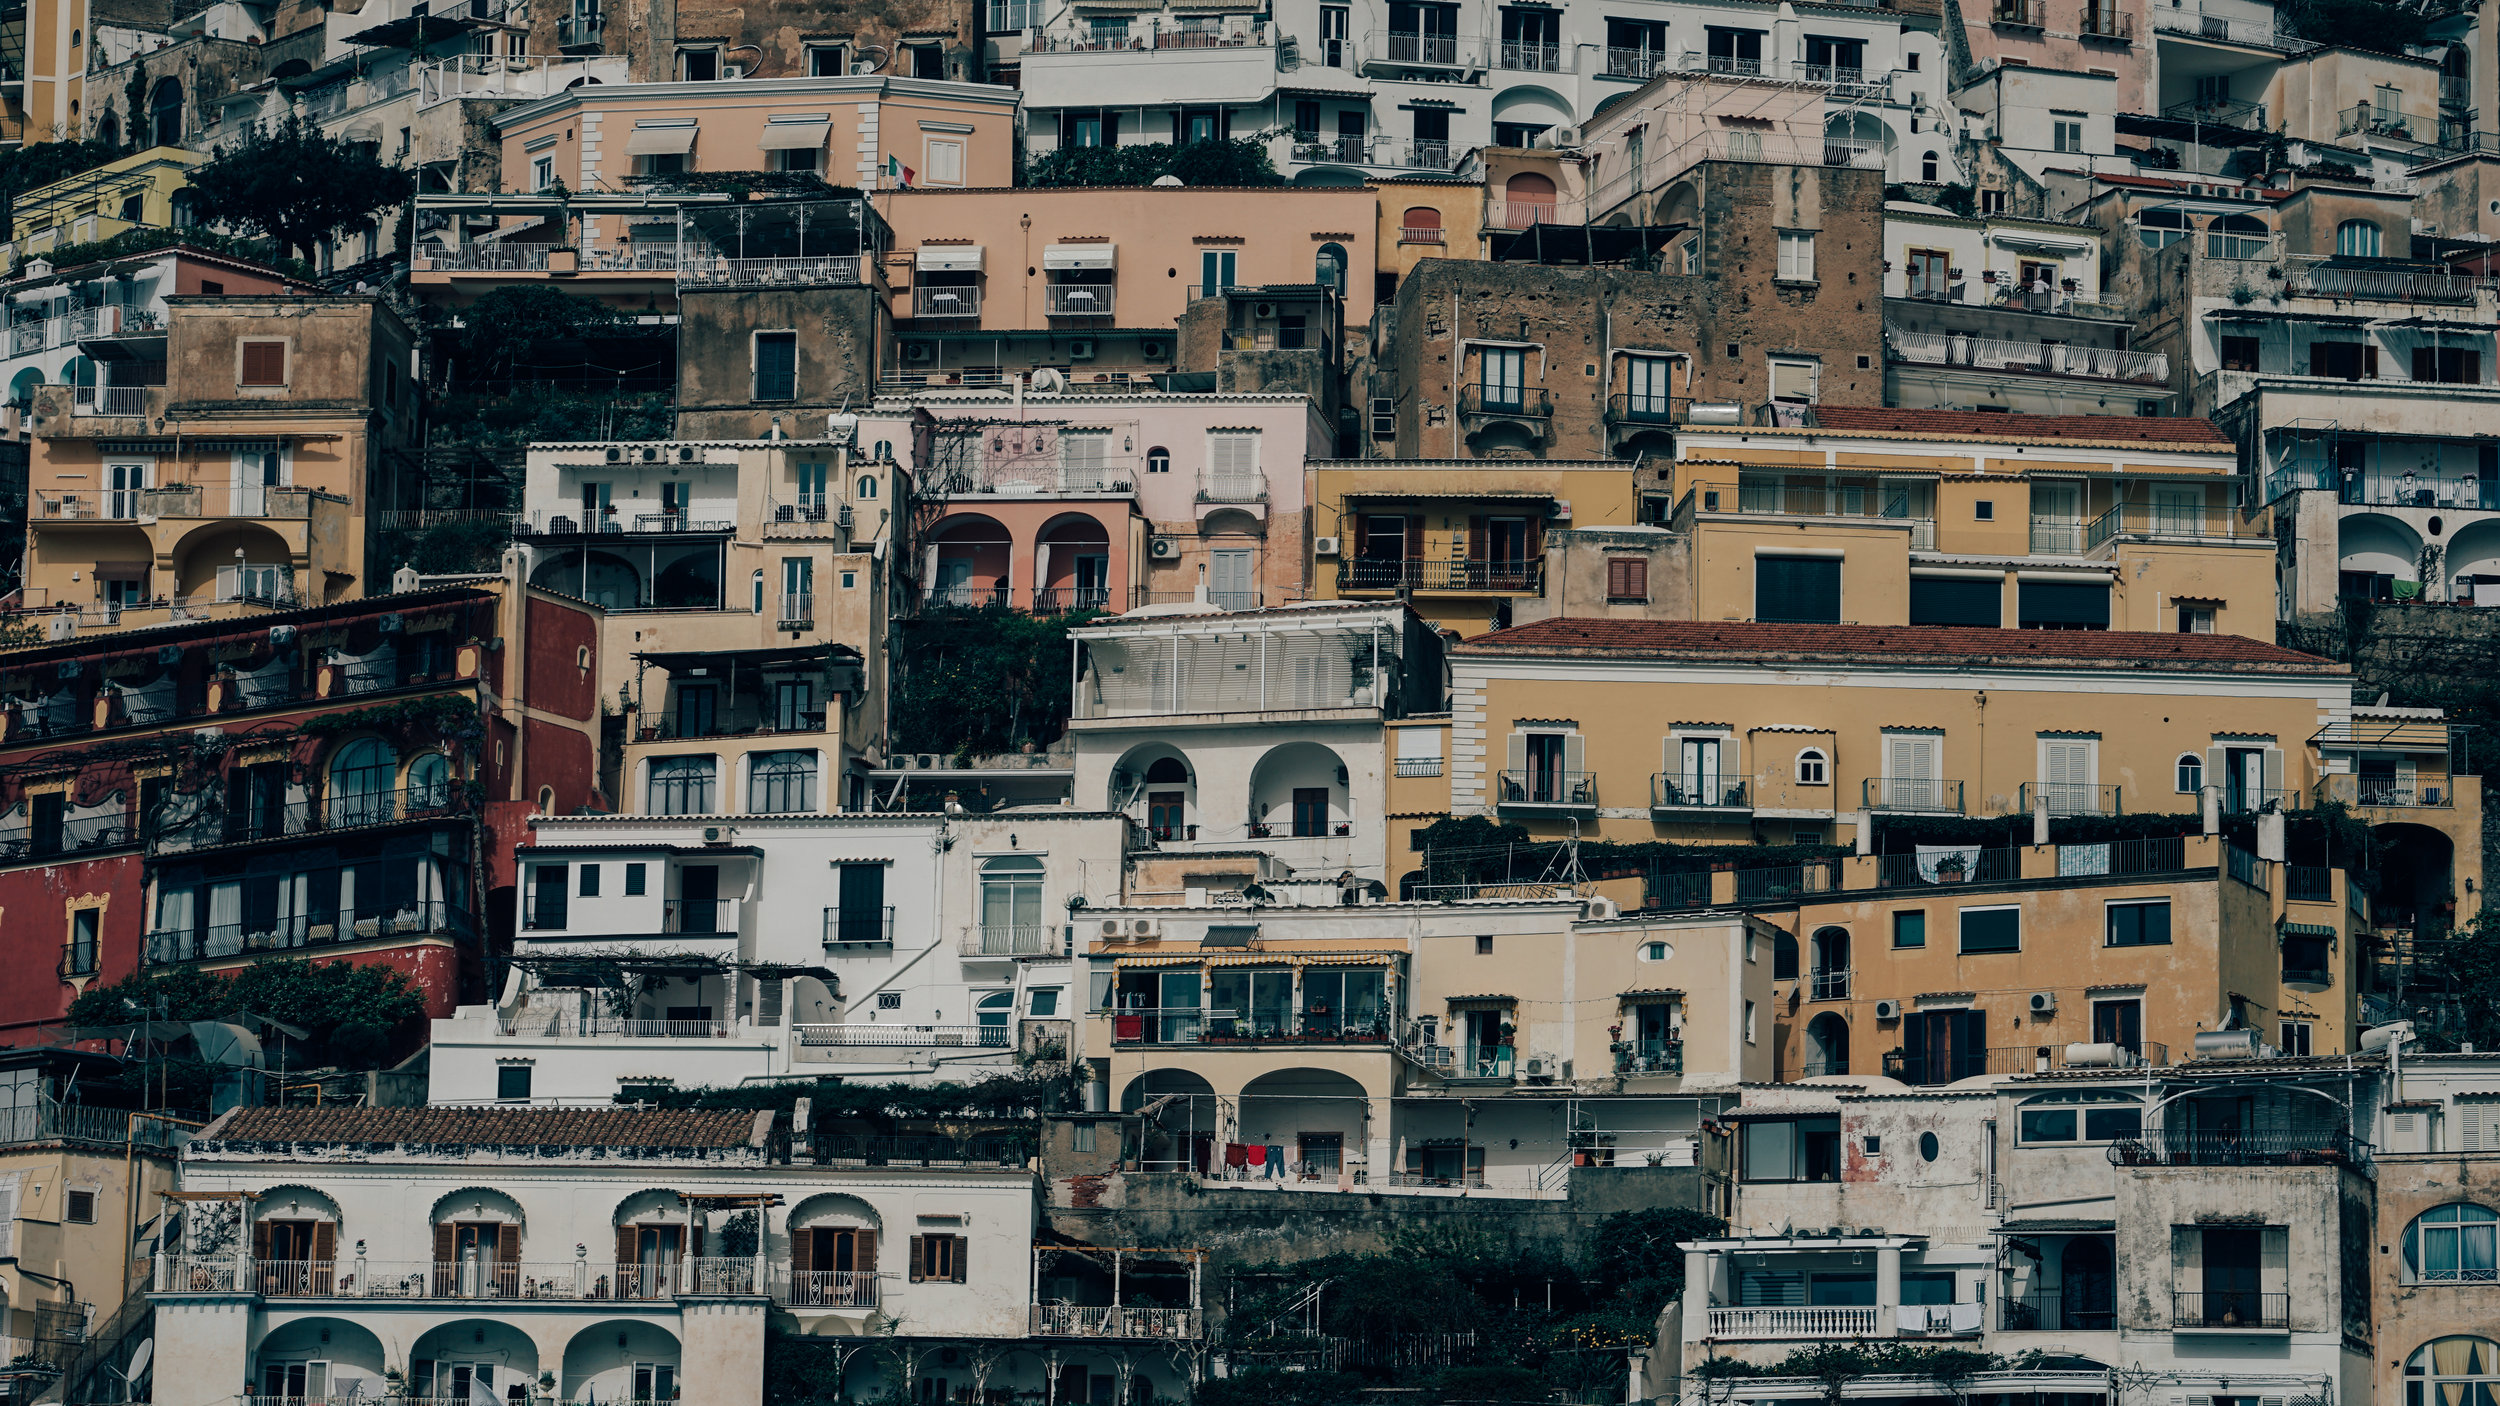 Positano Italy | Hungry Eye Journal